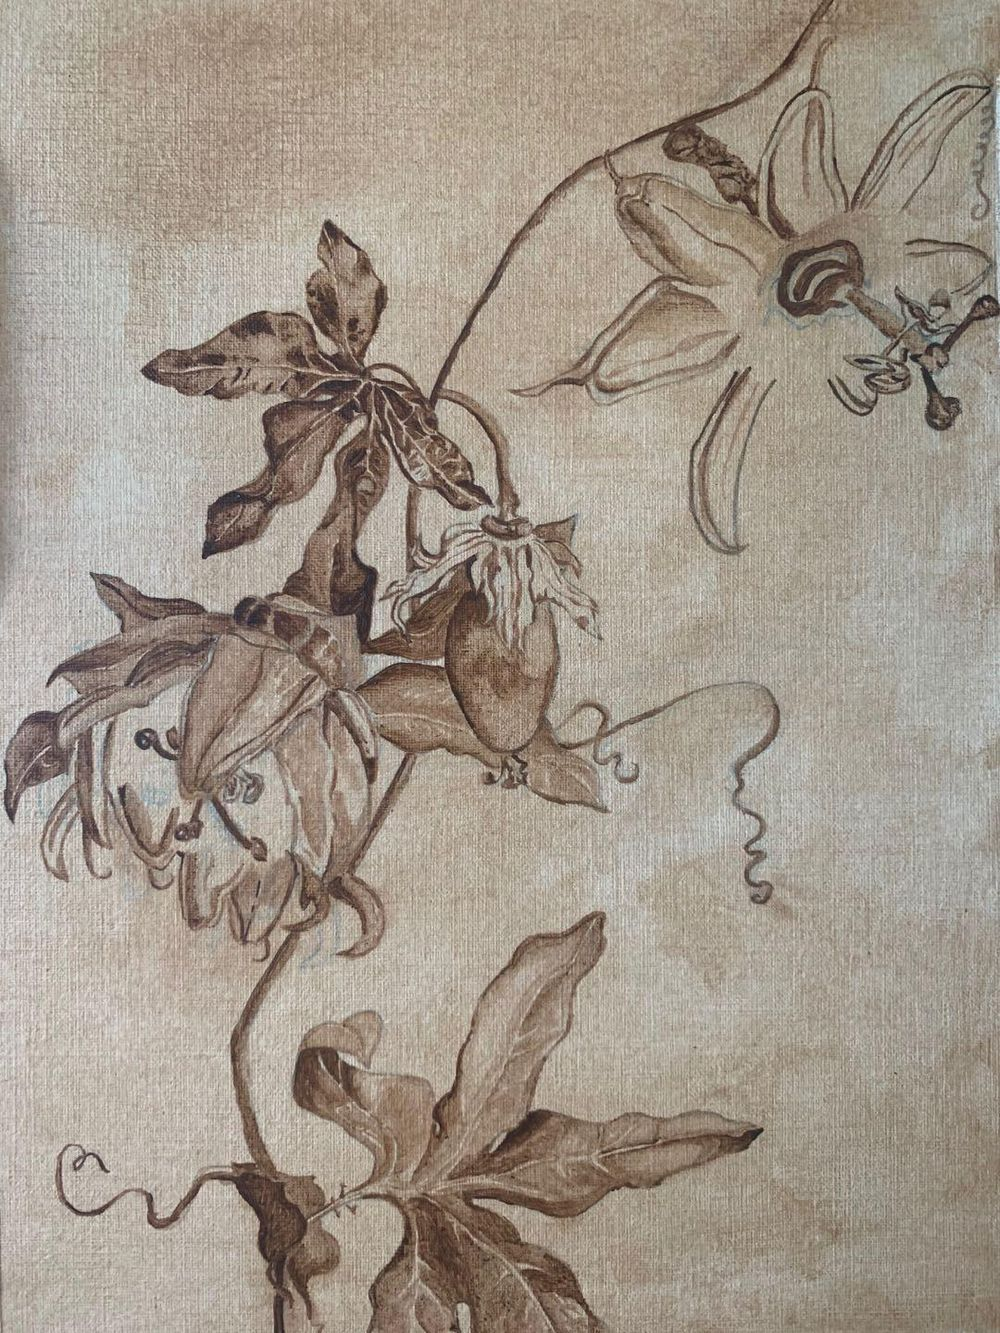 Antique underpainting of passiflora - image 1 - student project